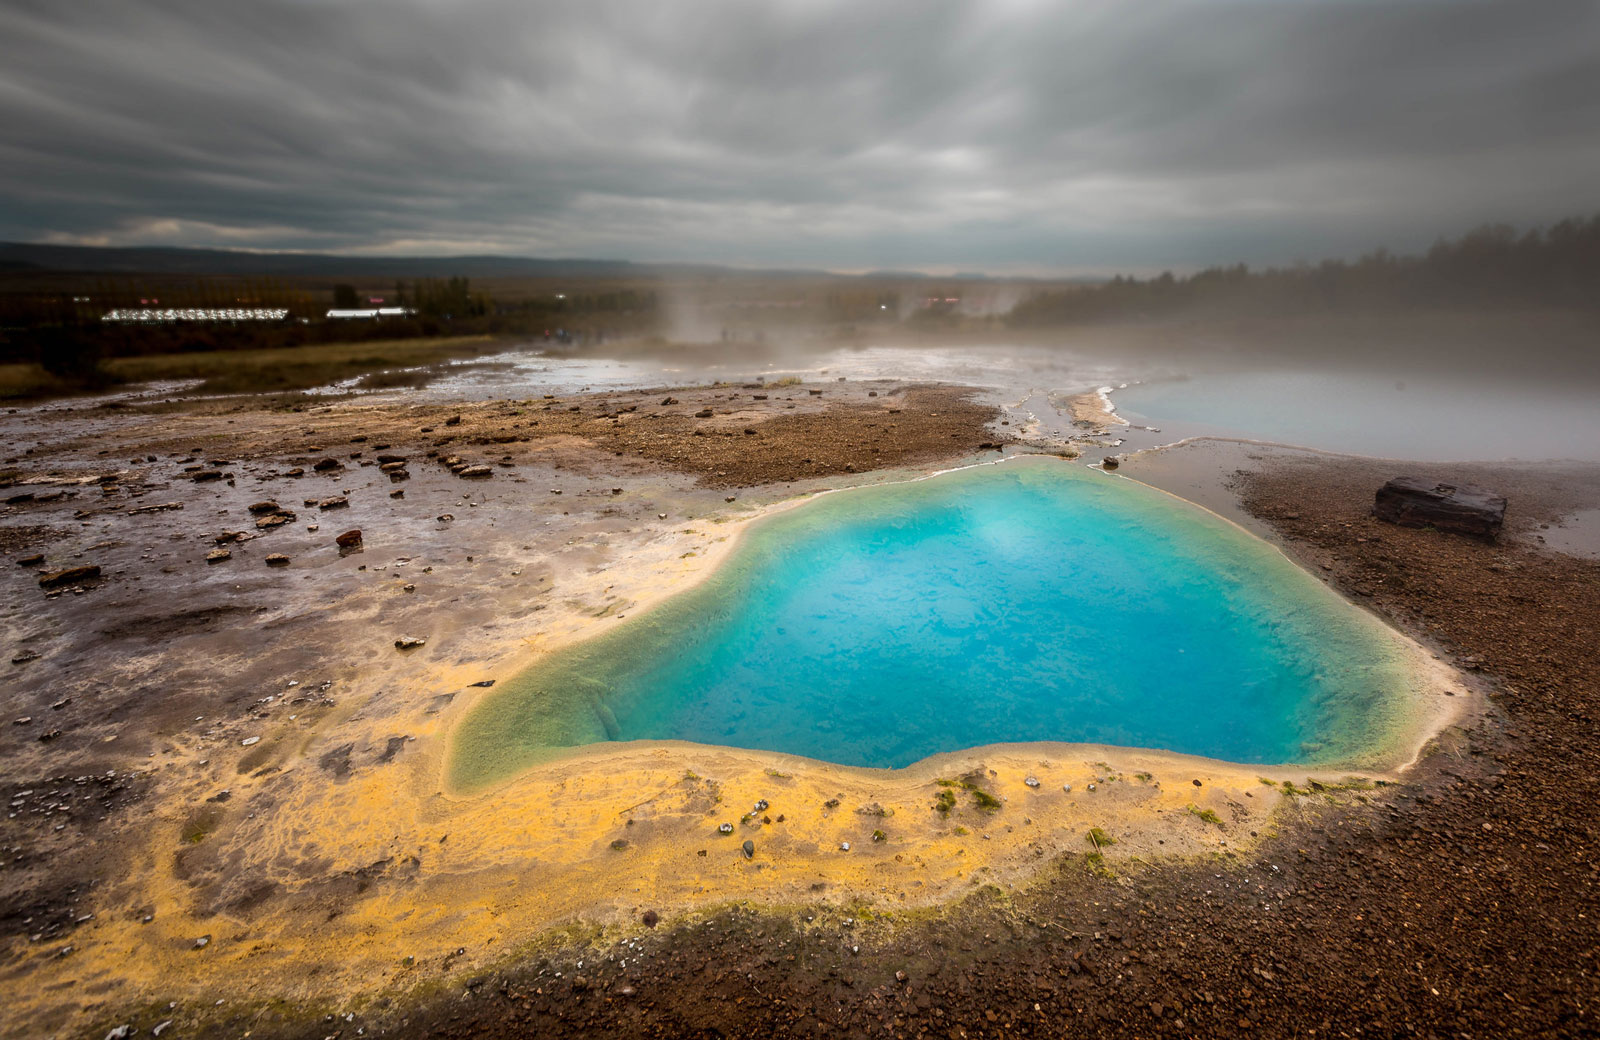 The muddy soils around geothermal hot springs in Iceland, like the Geysir spring pictured here, are the natural habitat for primitive photosynthetic heliobacteria. Scientists are now studying those organisms for insights into the early evolution of photosynthesis.